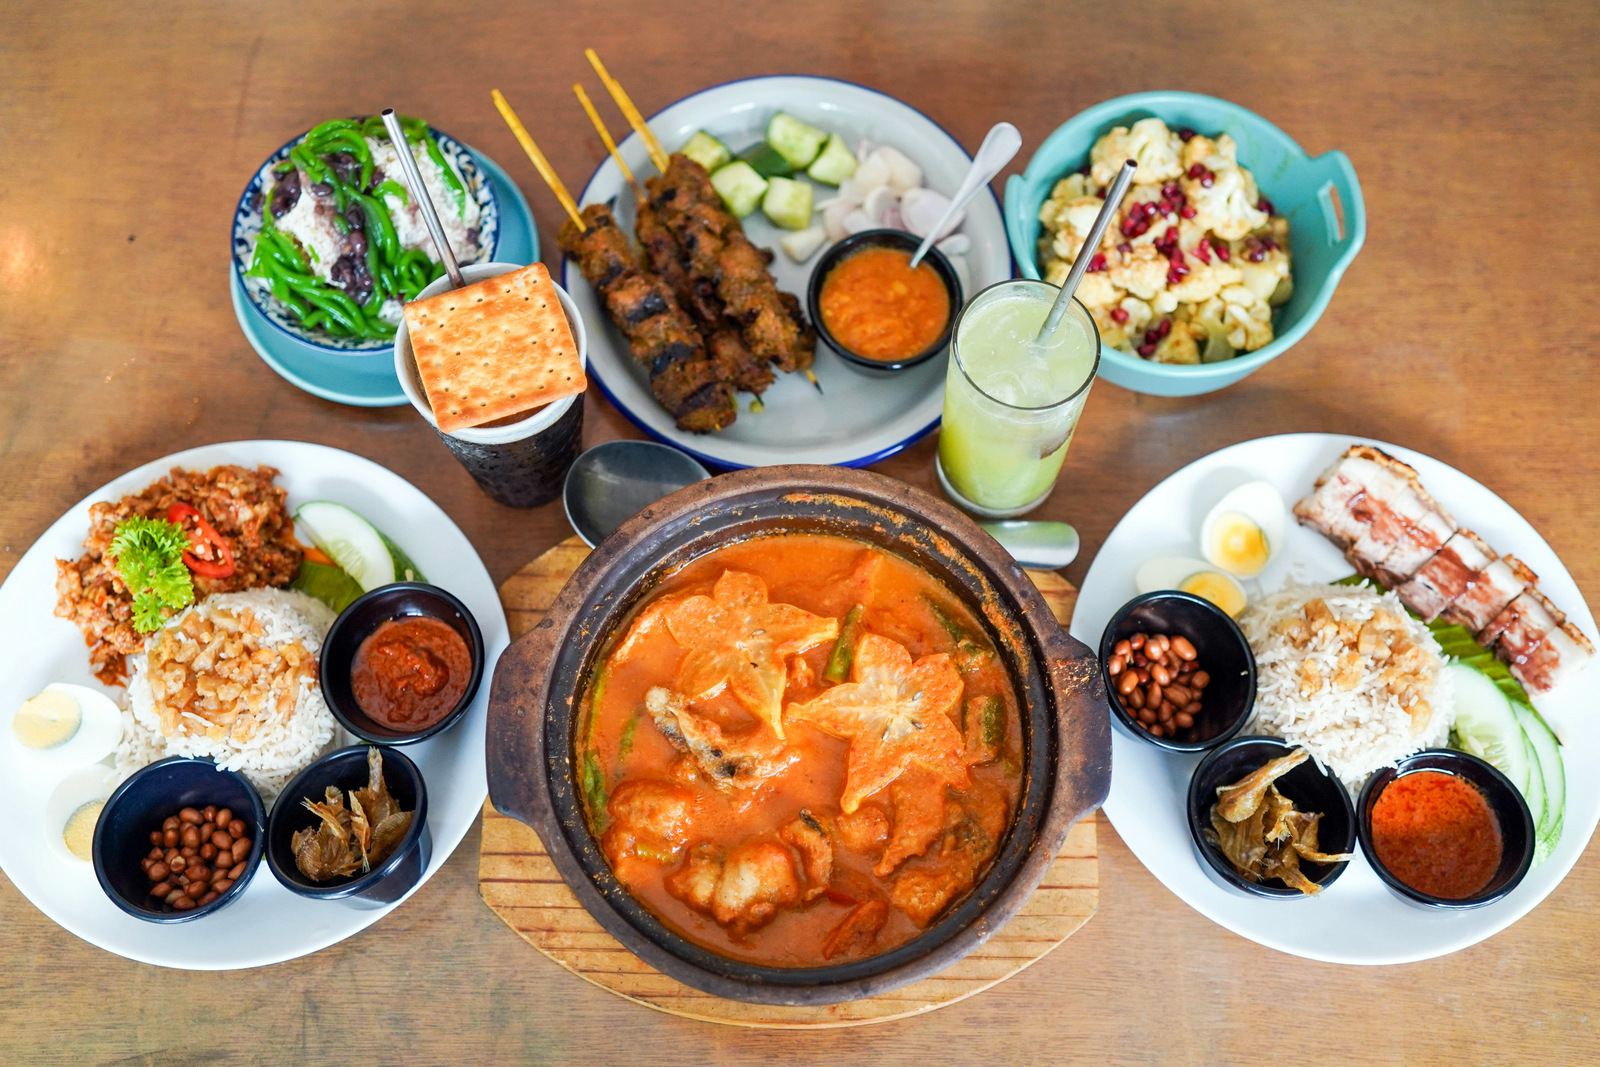 Kampung Contemporary Dining: Hearty Malacca-born recipes find a soulful home